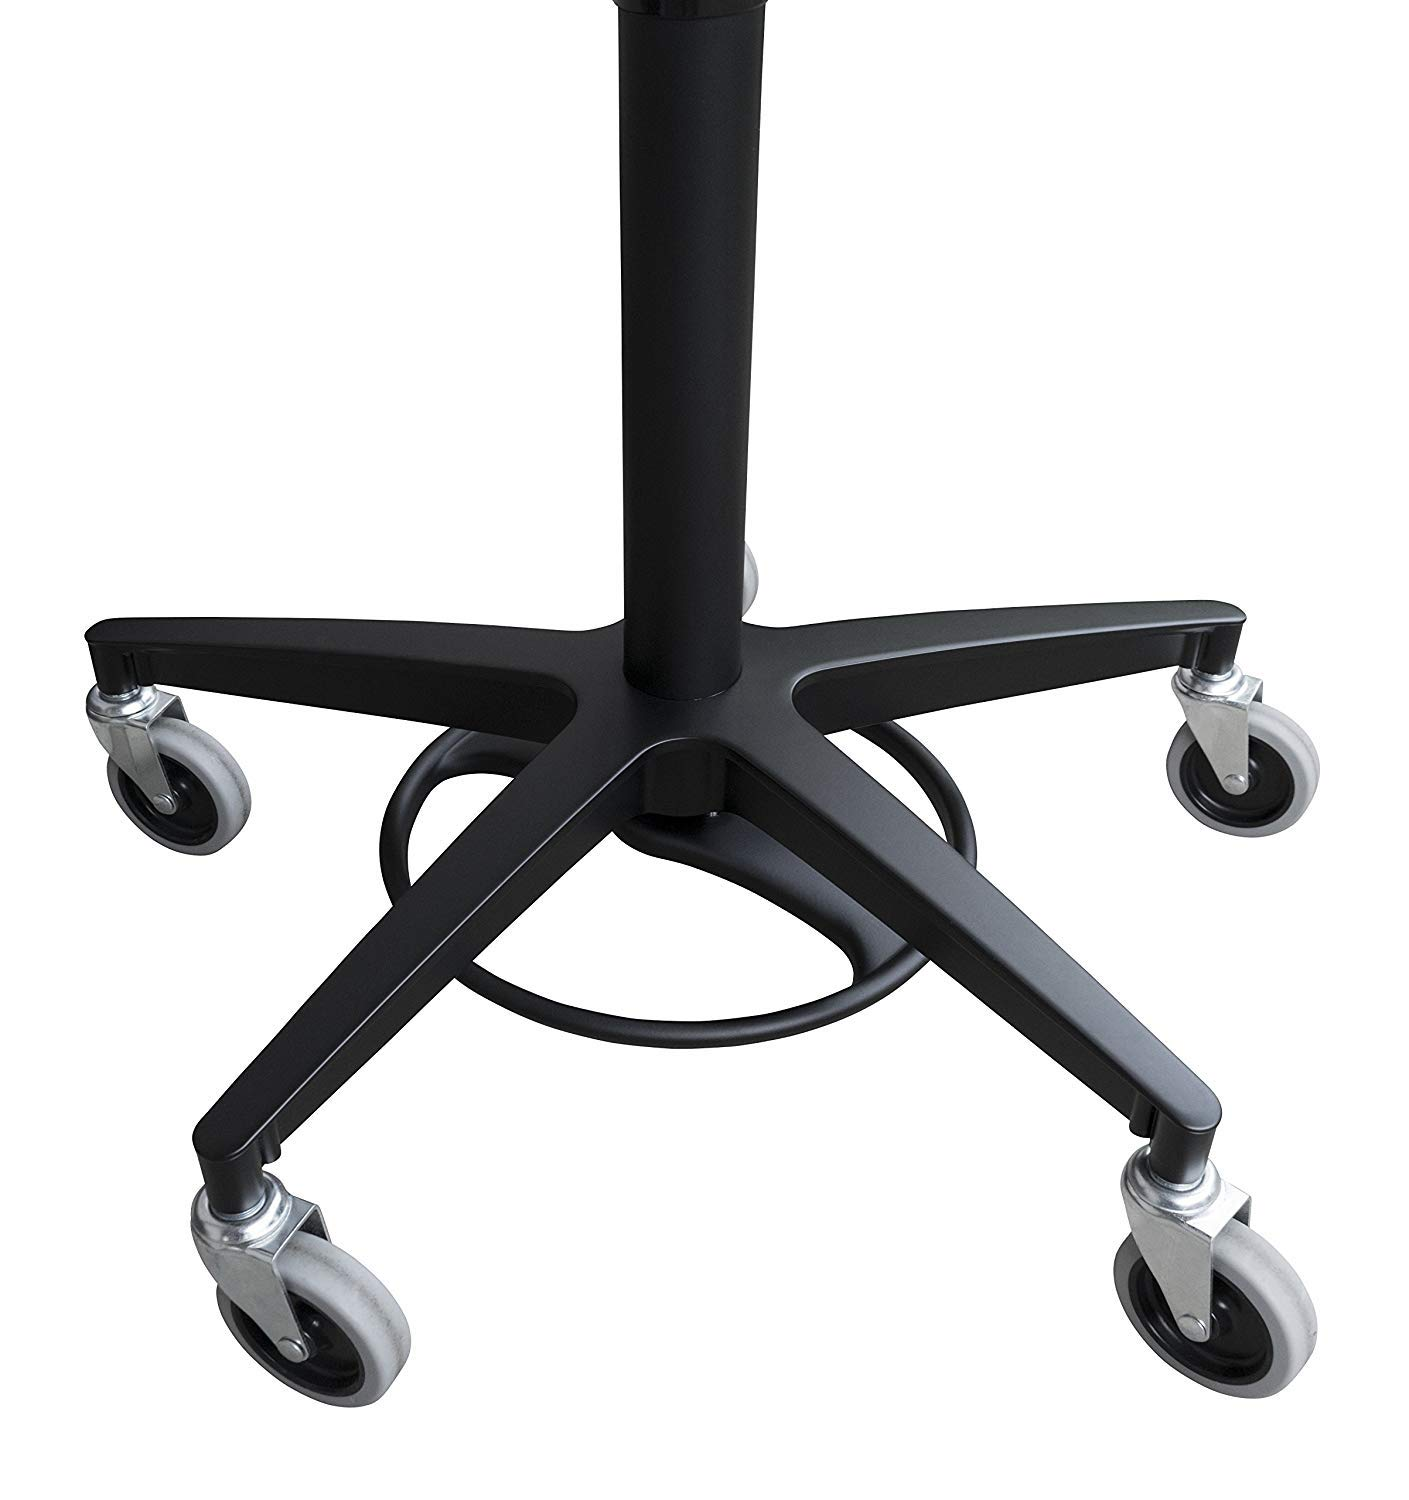 Omnimed 350305_EXT1 Laptop Stand with Storage Drawer by Omnimed (Image #2)